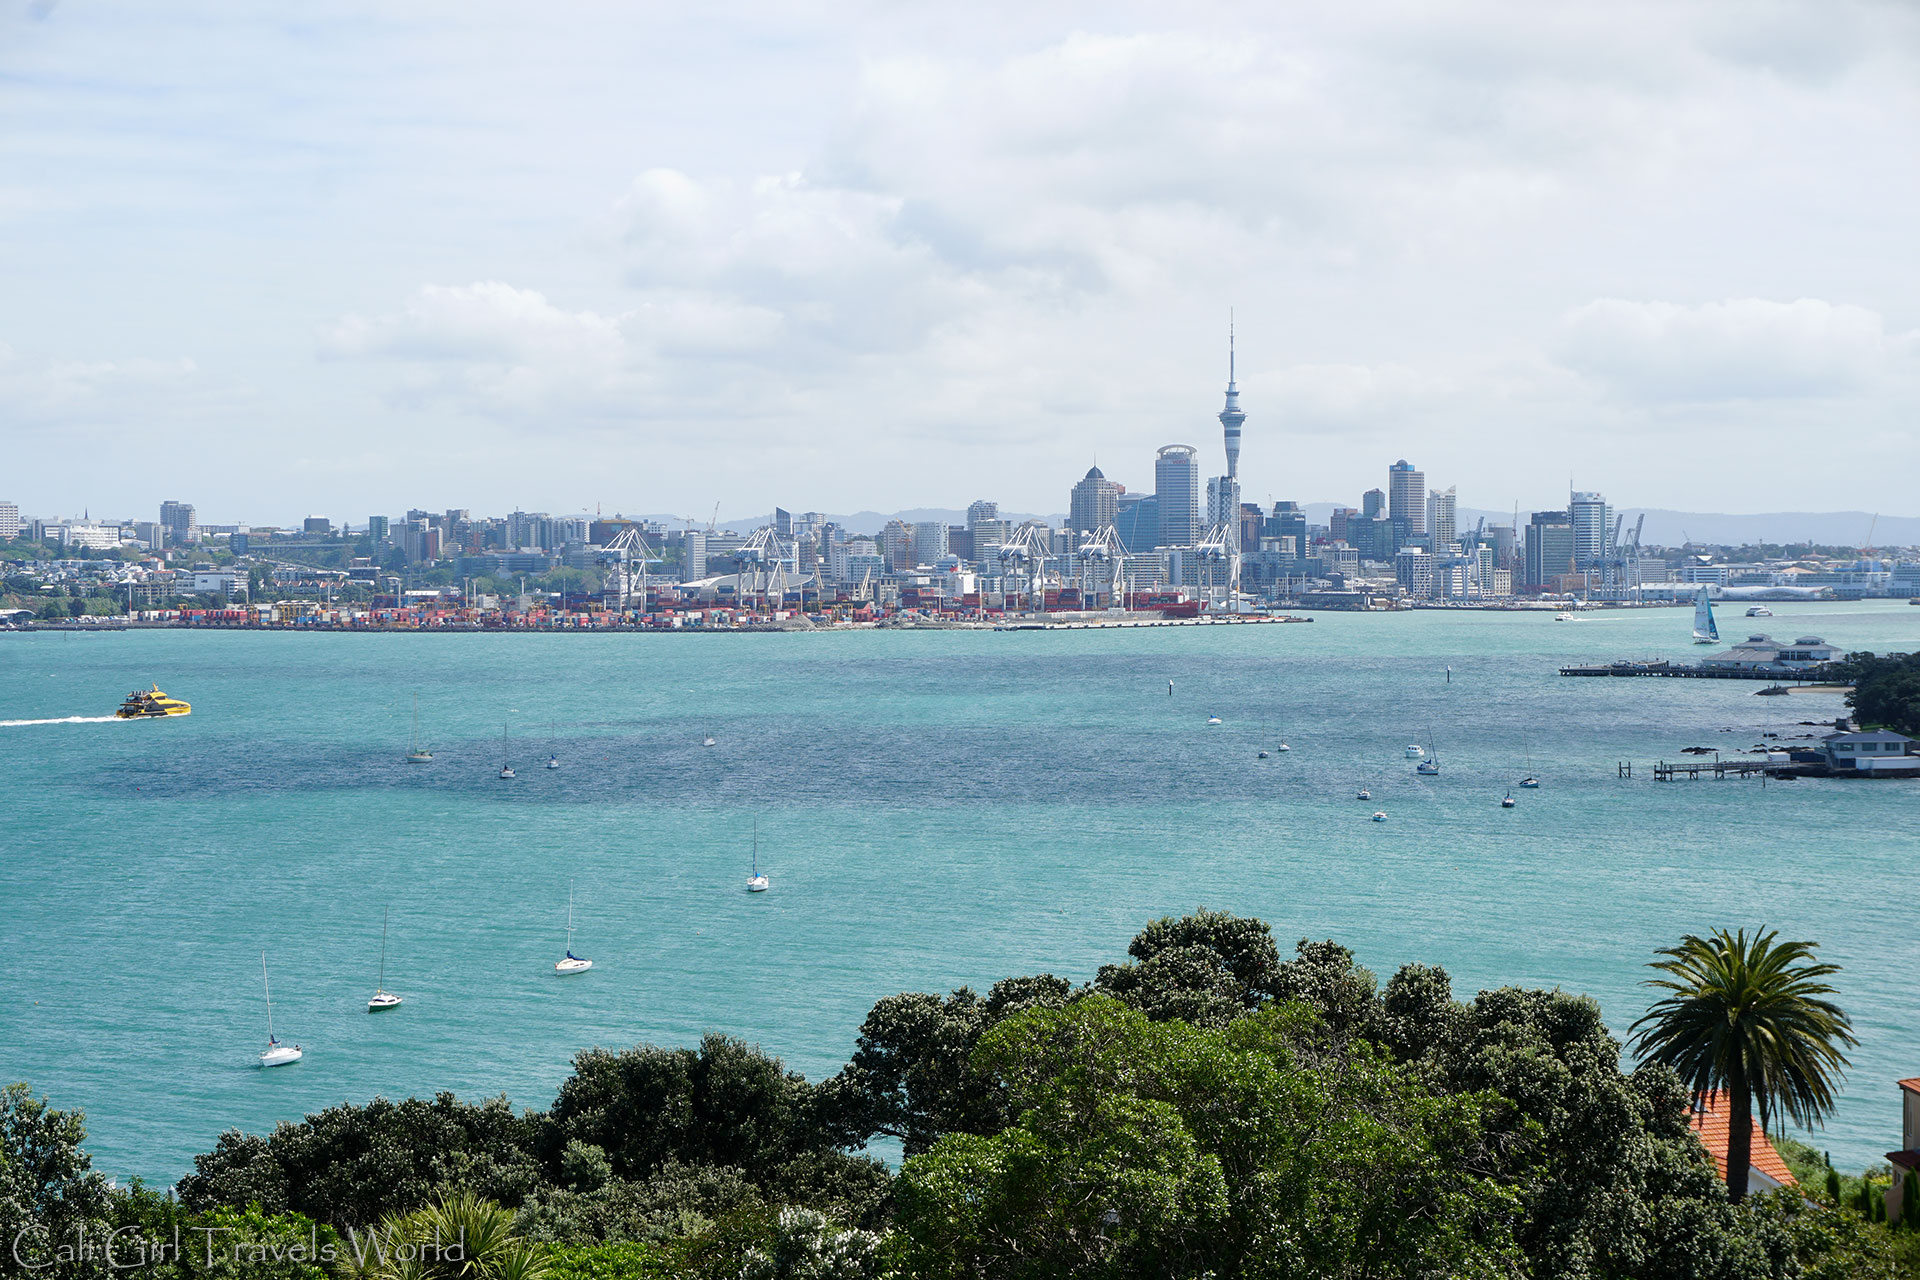 The view of the Auckland skyline and the ocean with sailboats, from Mount Victoria in Devonport in New Zealand.